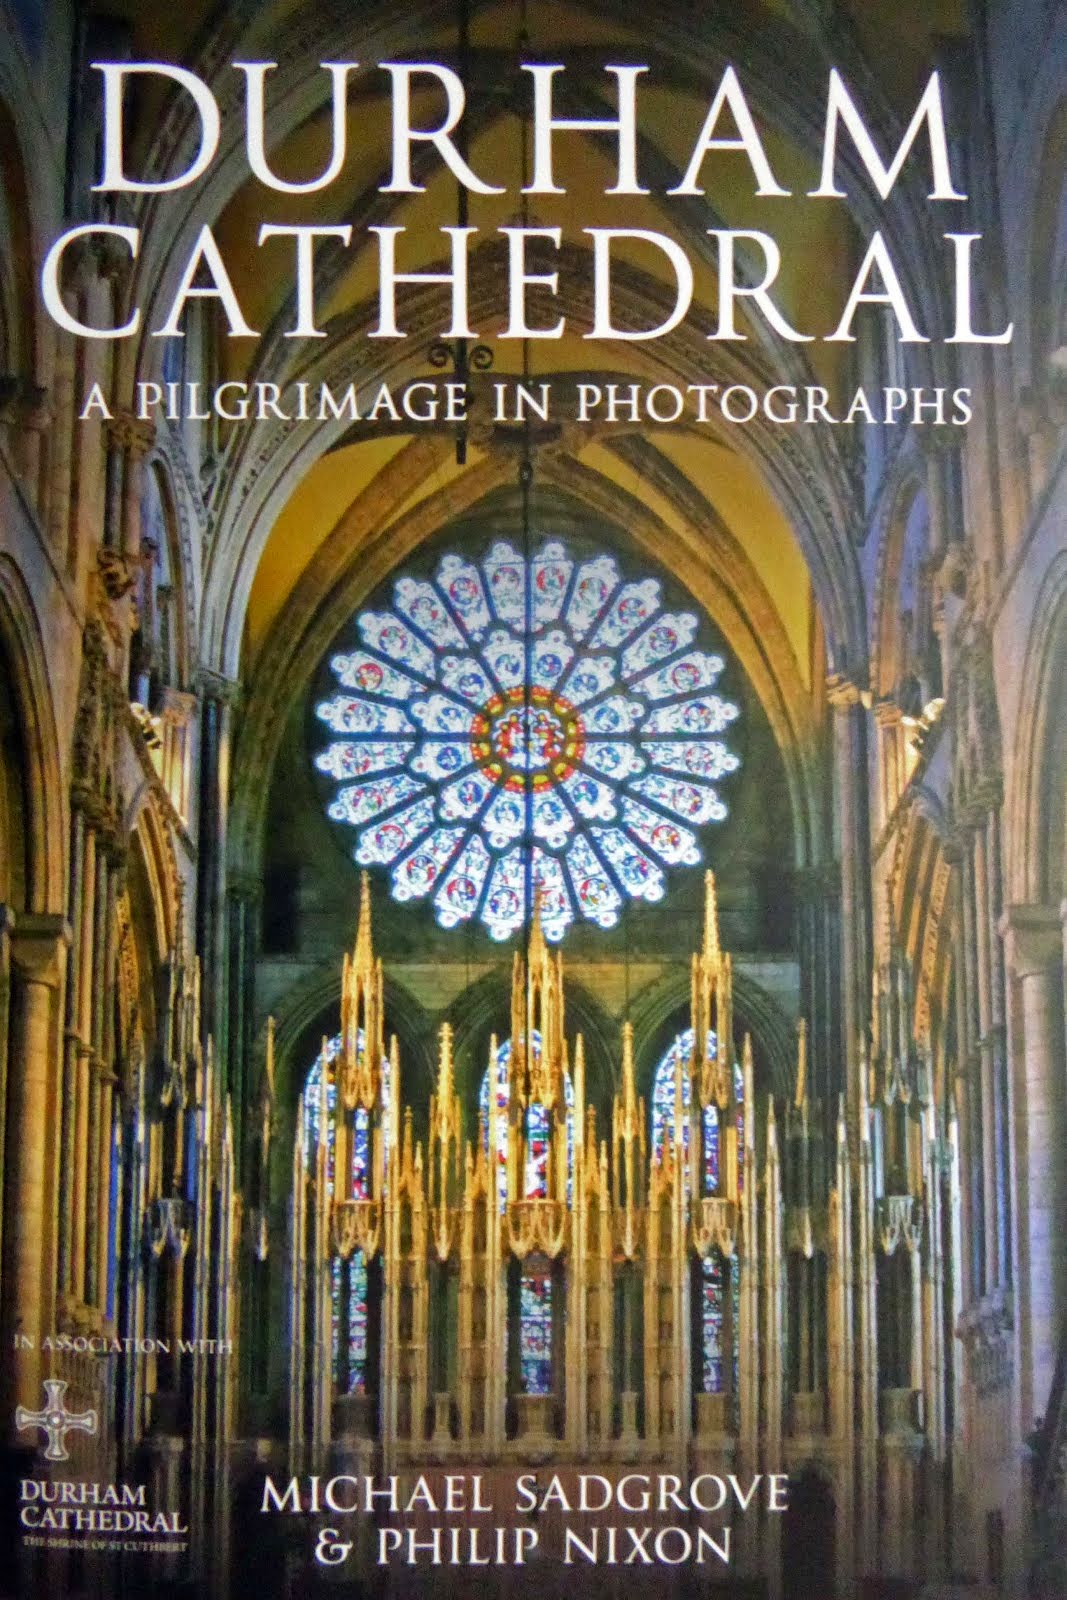 Durham Cathedral: a pilgrimage in photographs